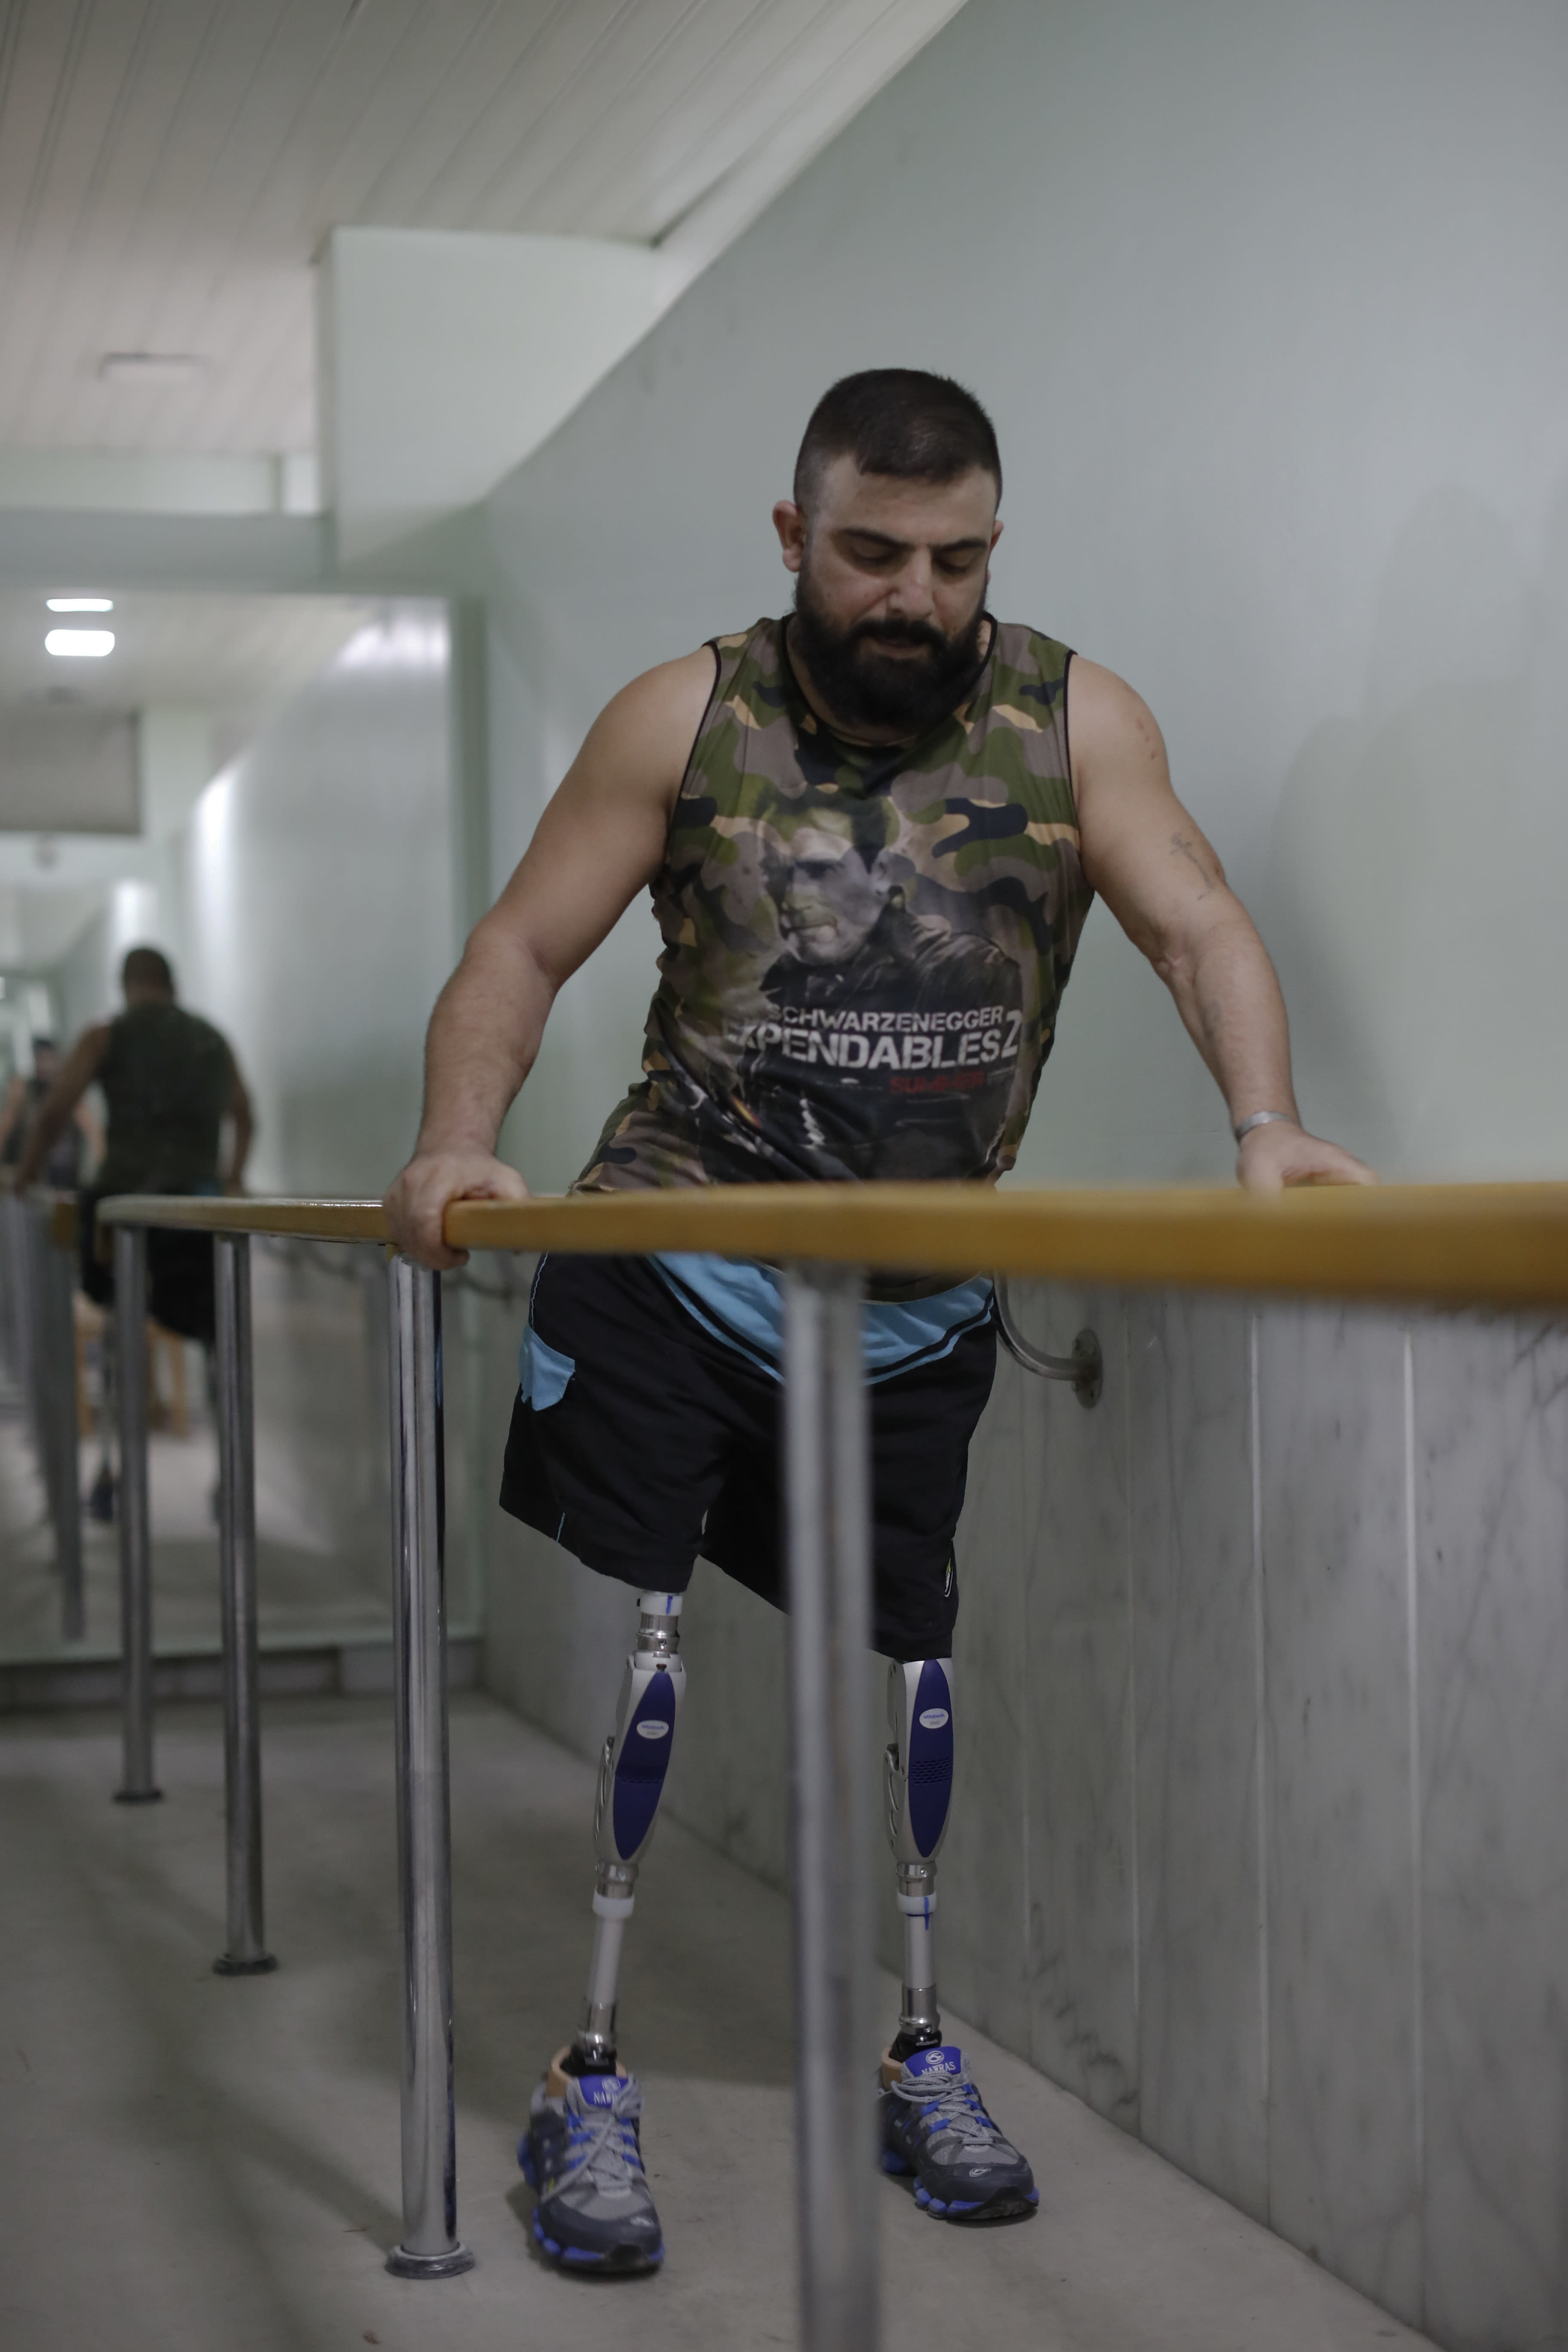 <p>Haidar Hussein, a Syrian soldier who lost his legs while fighting on the frontlines in Syria's war, walks on prosthetics during a physical therapy session at the Ahmad Hamish Martyr hospital in Damascus, Syria. (Photo: Hassan Ammar/AP) </p>